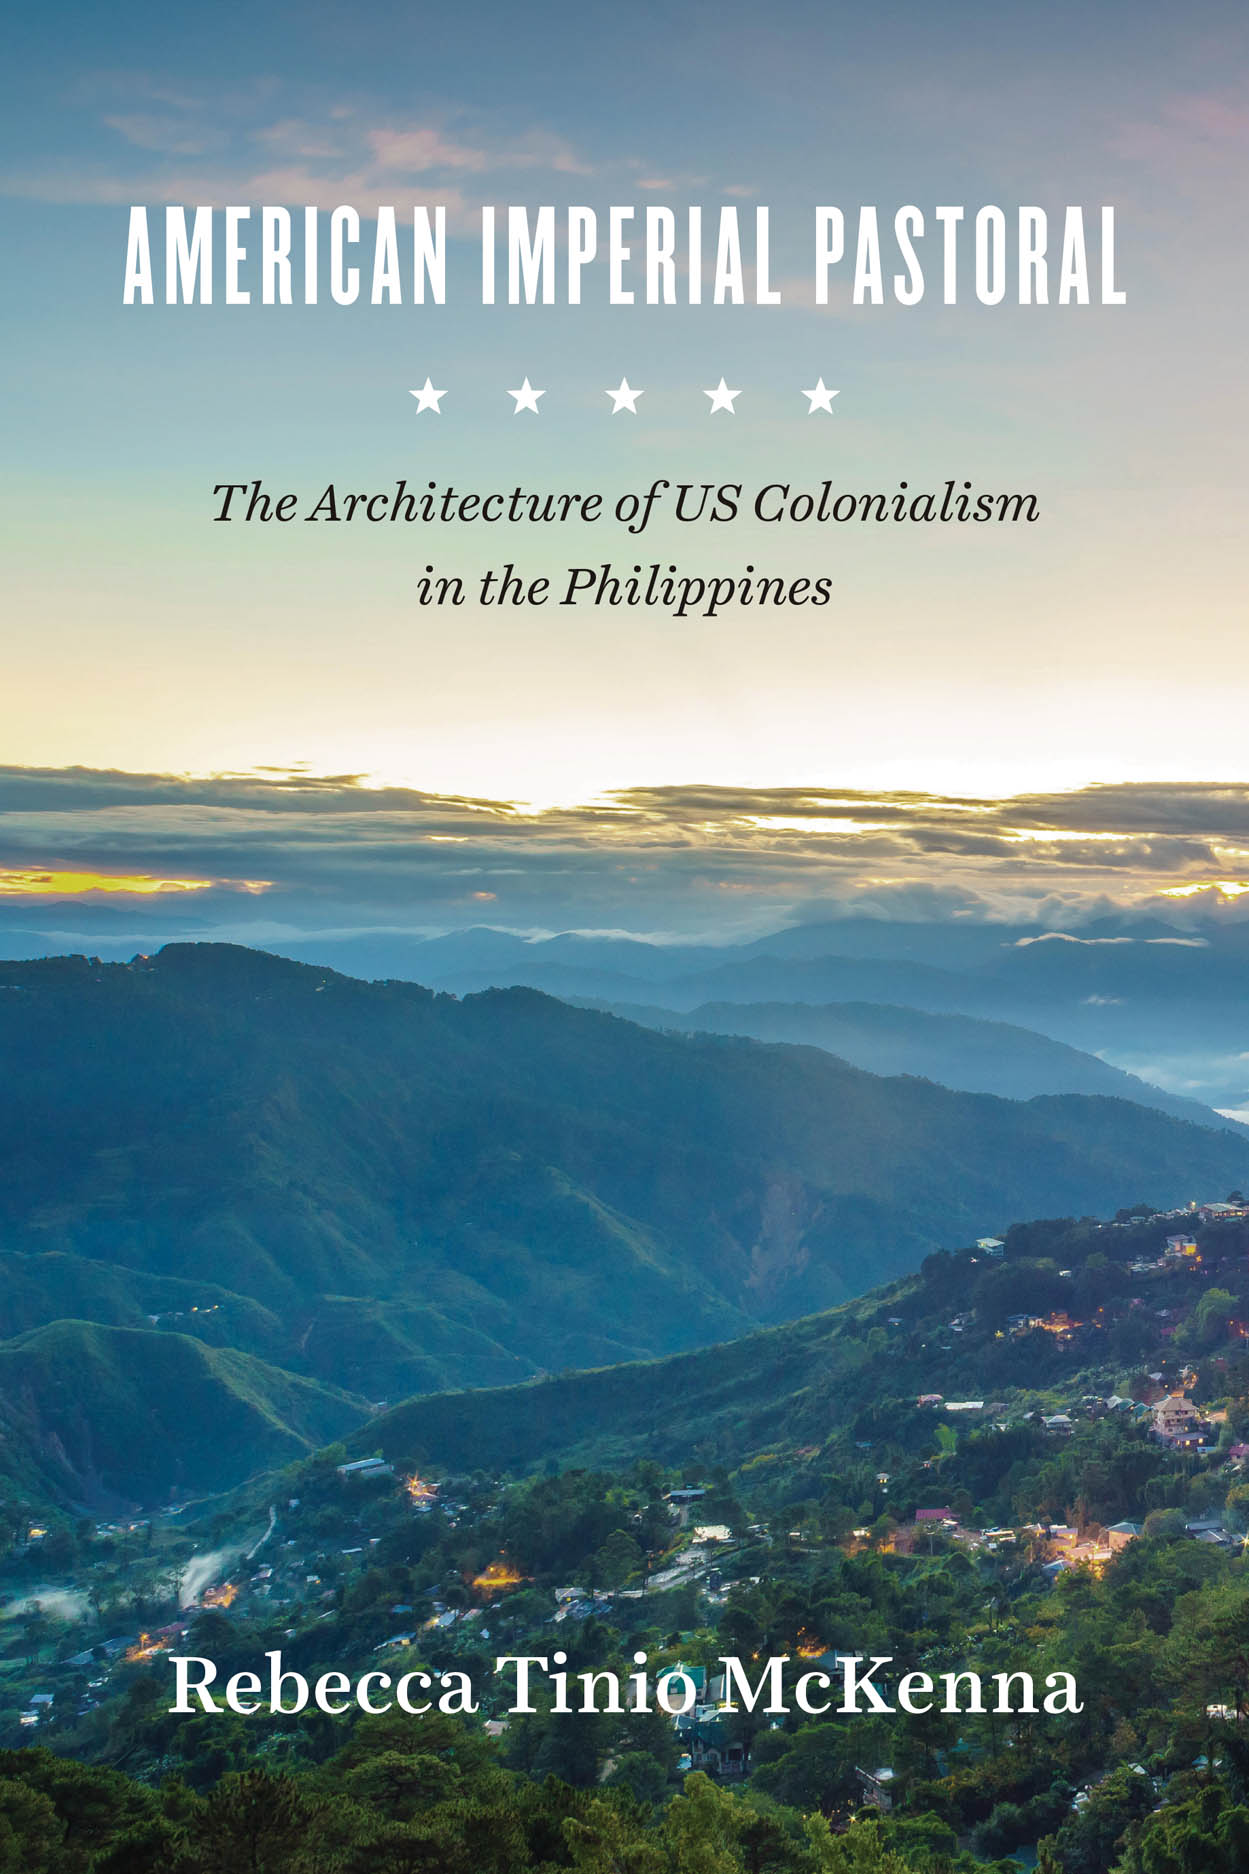 American Imperial Pastoral: The Architecture of US Colonialism in the Philippines